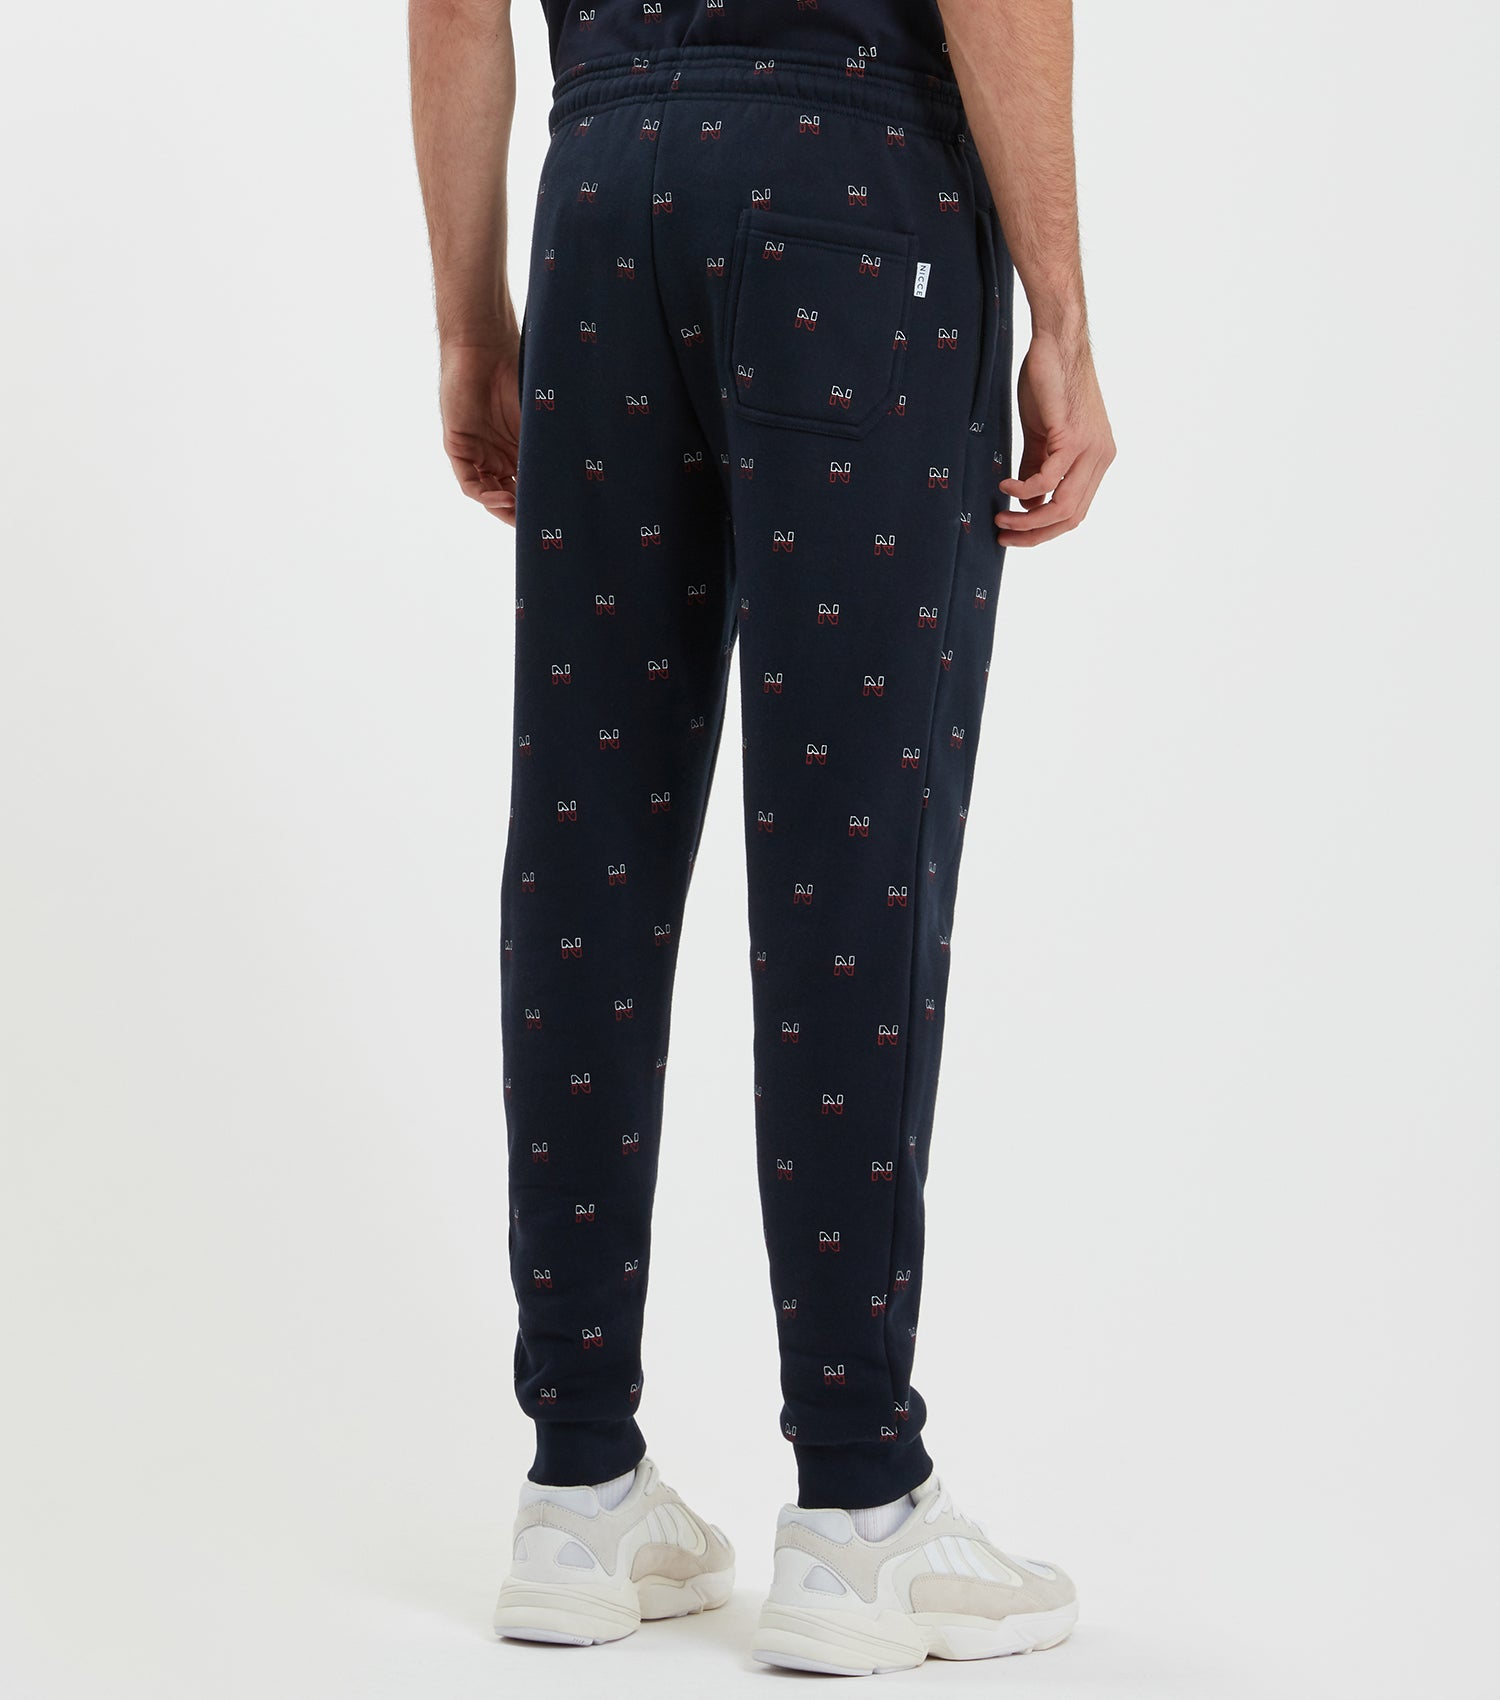 ... All over joggers in navy. Featuring elasticated waistband c741ad9878a